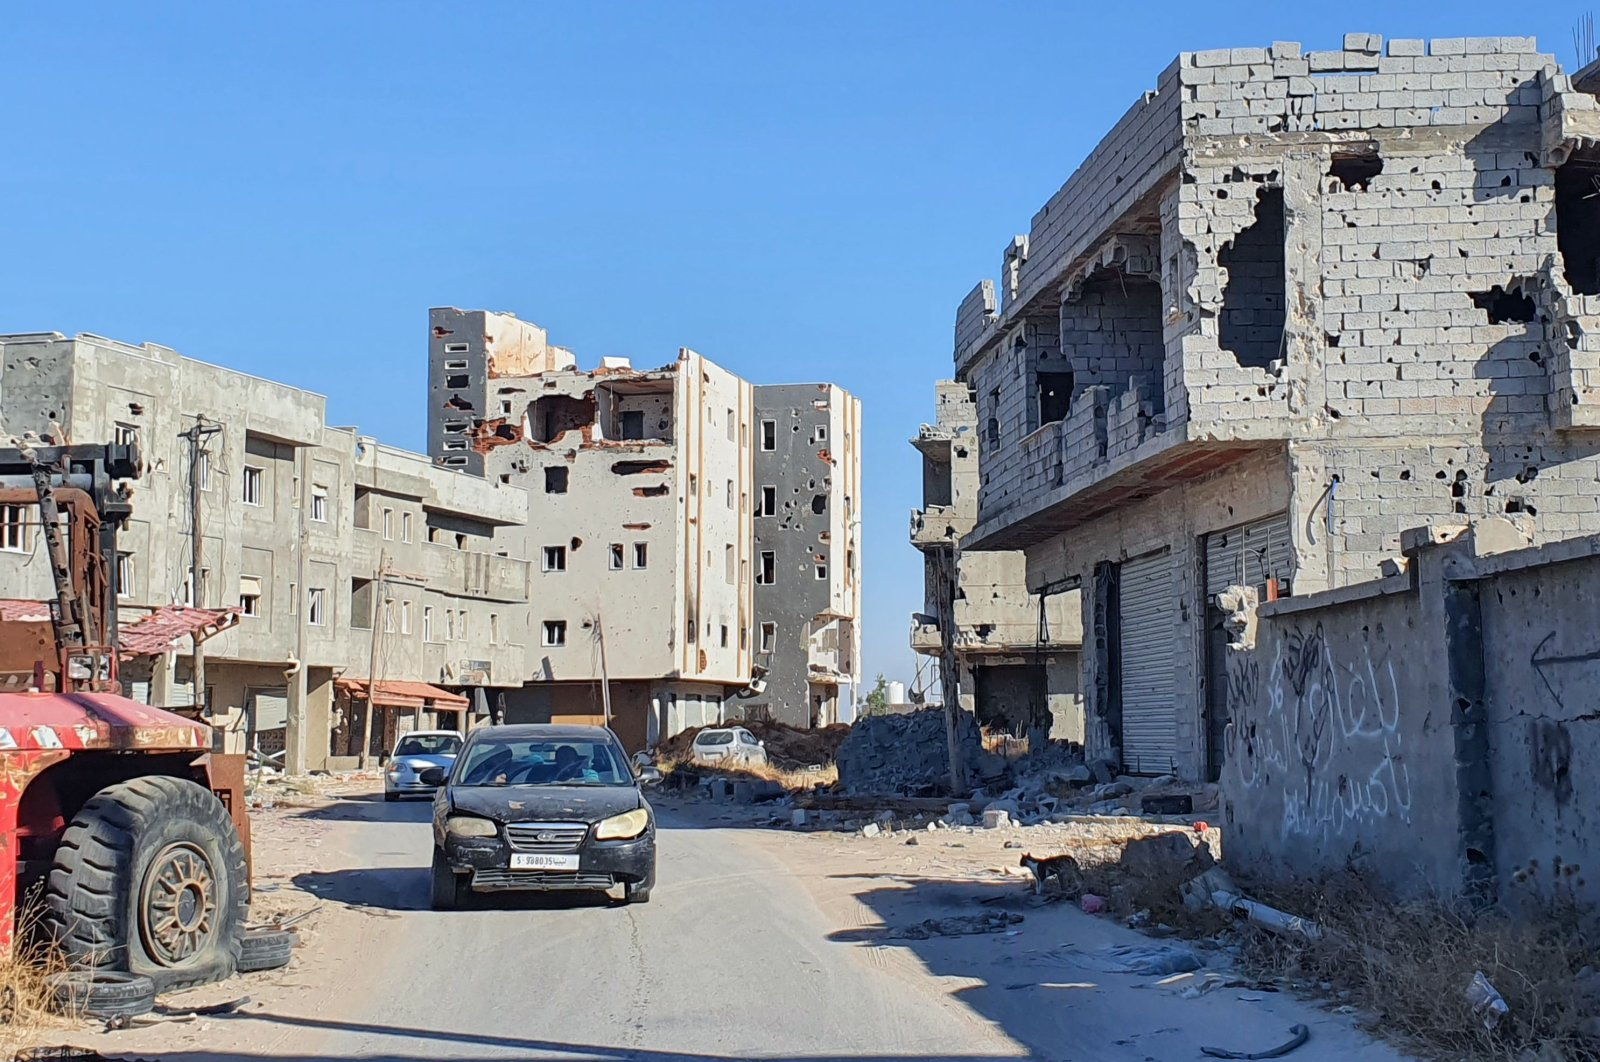 Cars advance on an empty road lined with damaged buildings in the Salaheddin district south of the Libyan capital Tripoli, on June 21, 2020. (AFP Photo)